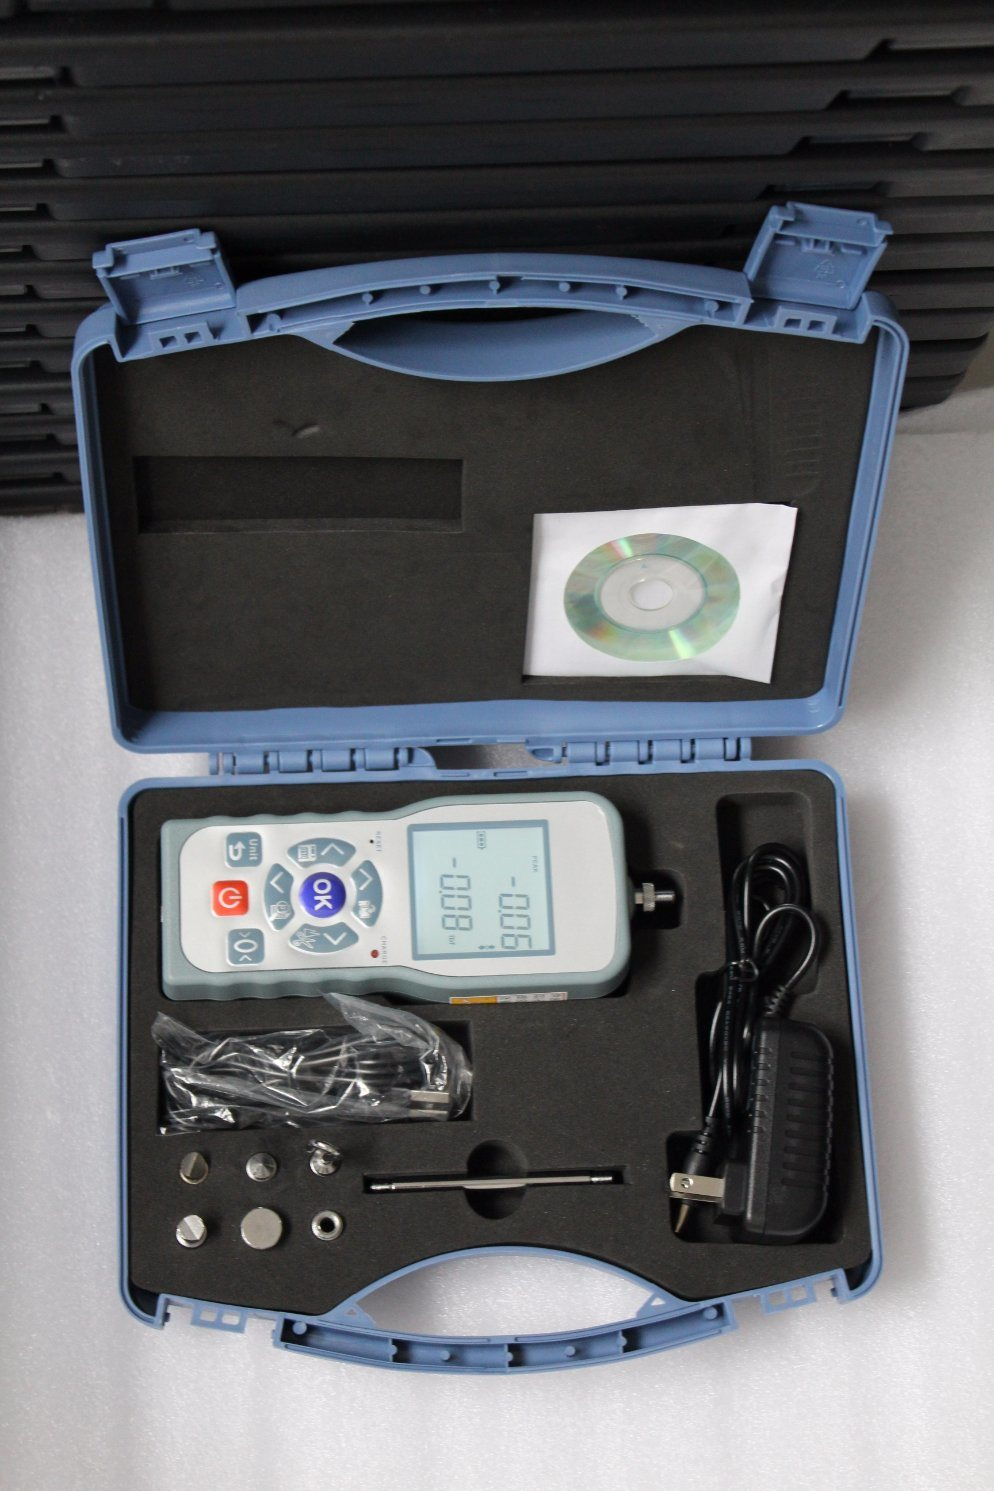 Measuring Instruments Ep Digital Force Gauge pictures & photos